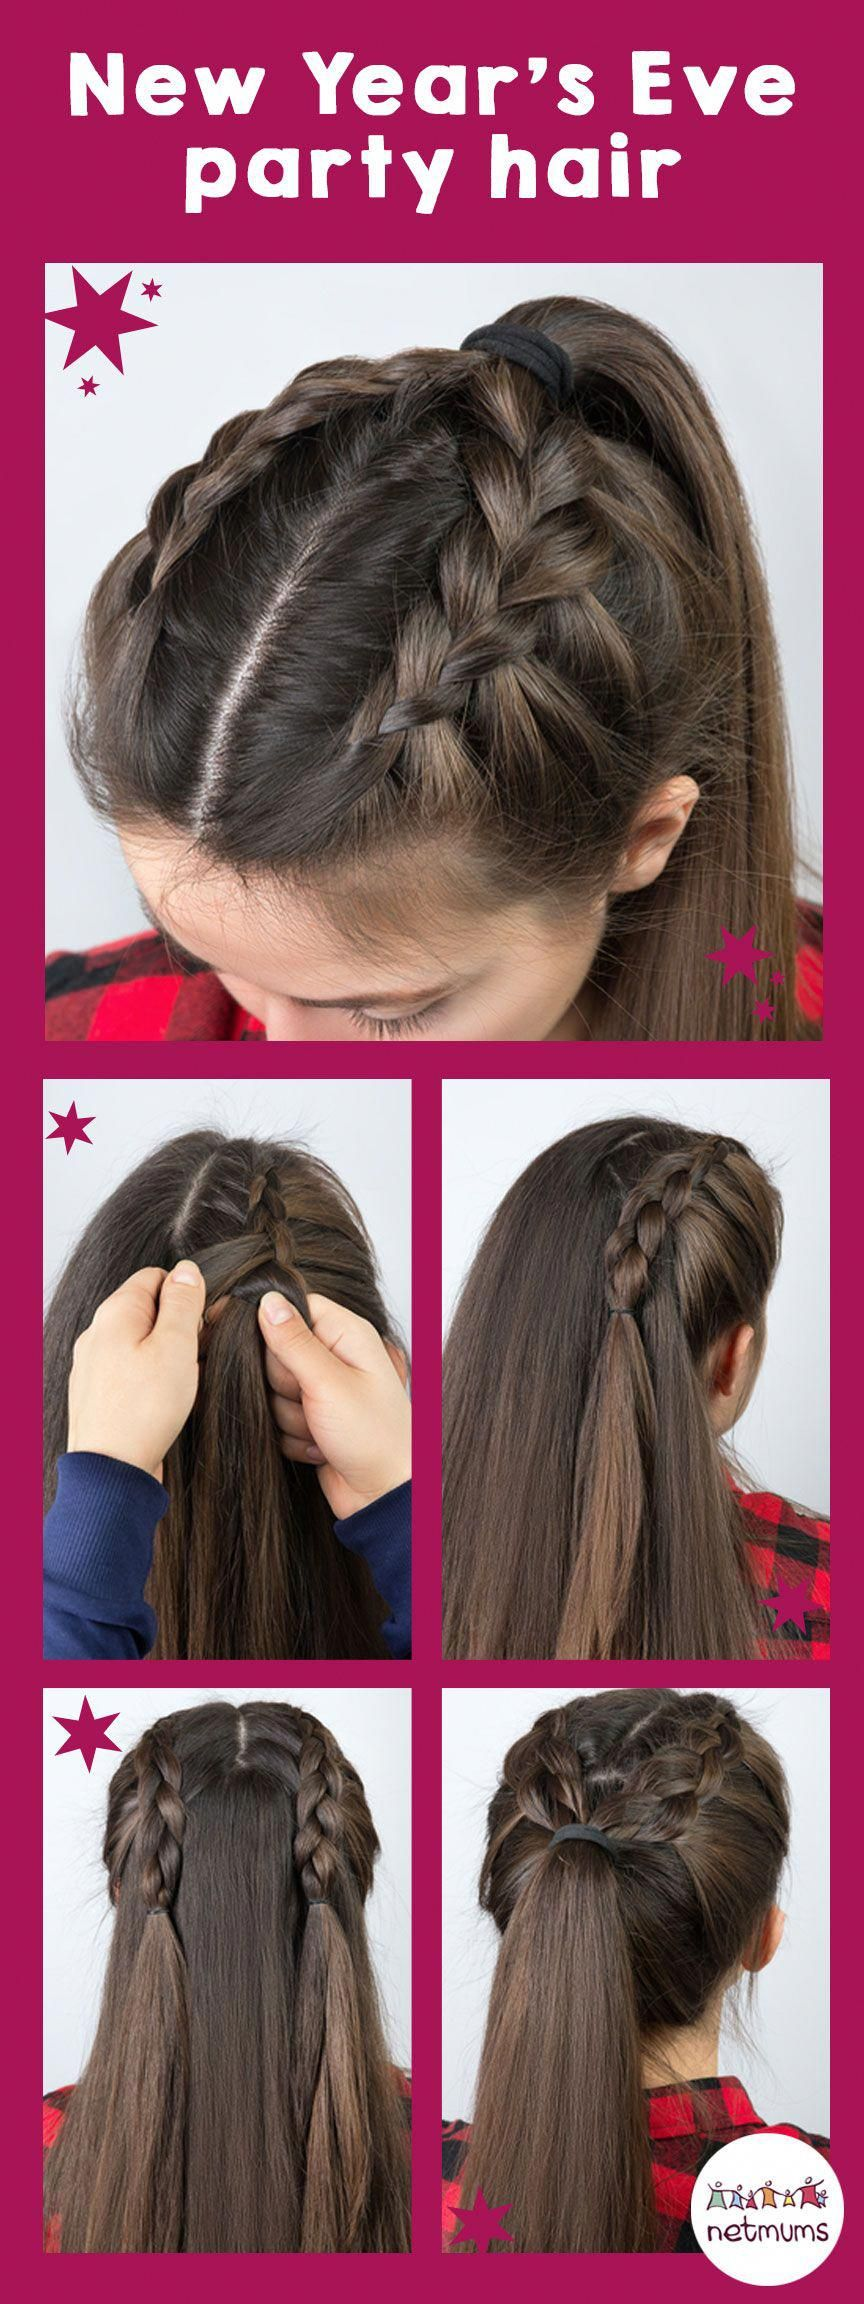 New Year S Eve Hair Ideas If You Re Looking For Hair Ideas For New Year S Eve Why Not Try This Easy Tutori New Year S Eve Hair Hair Styles New Year Hairstyle